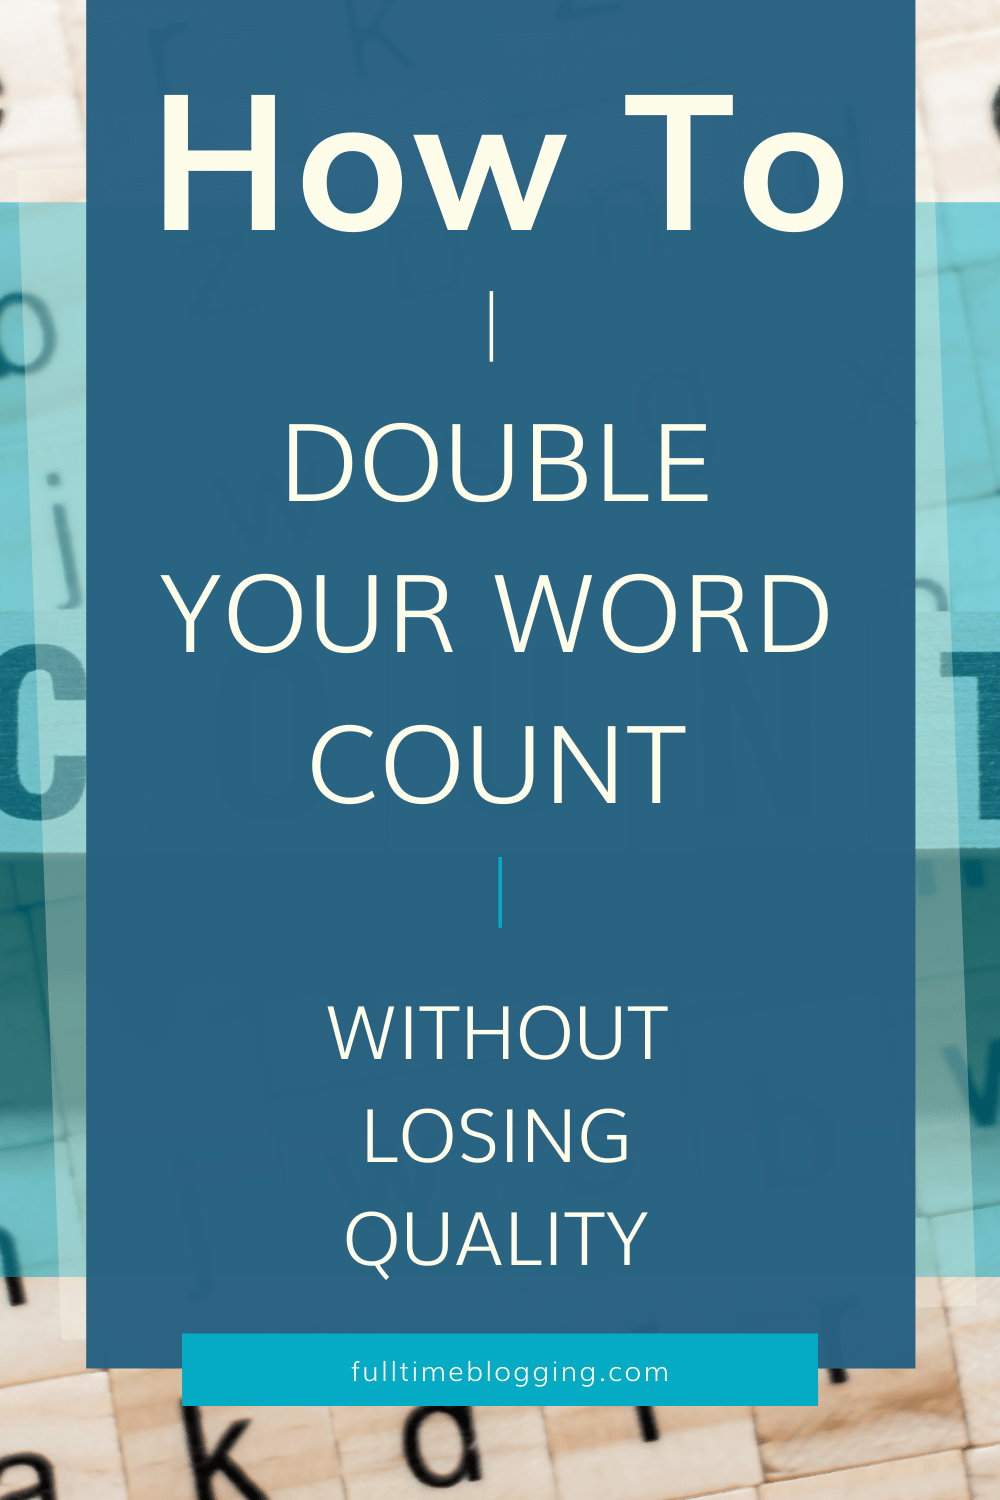 How to Double Your Word Count